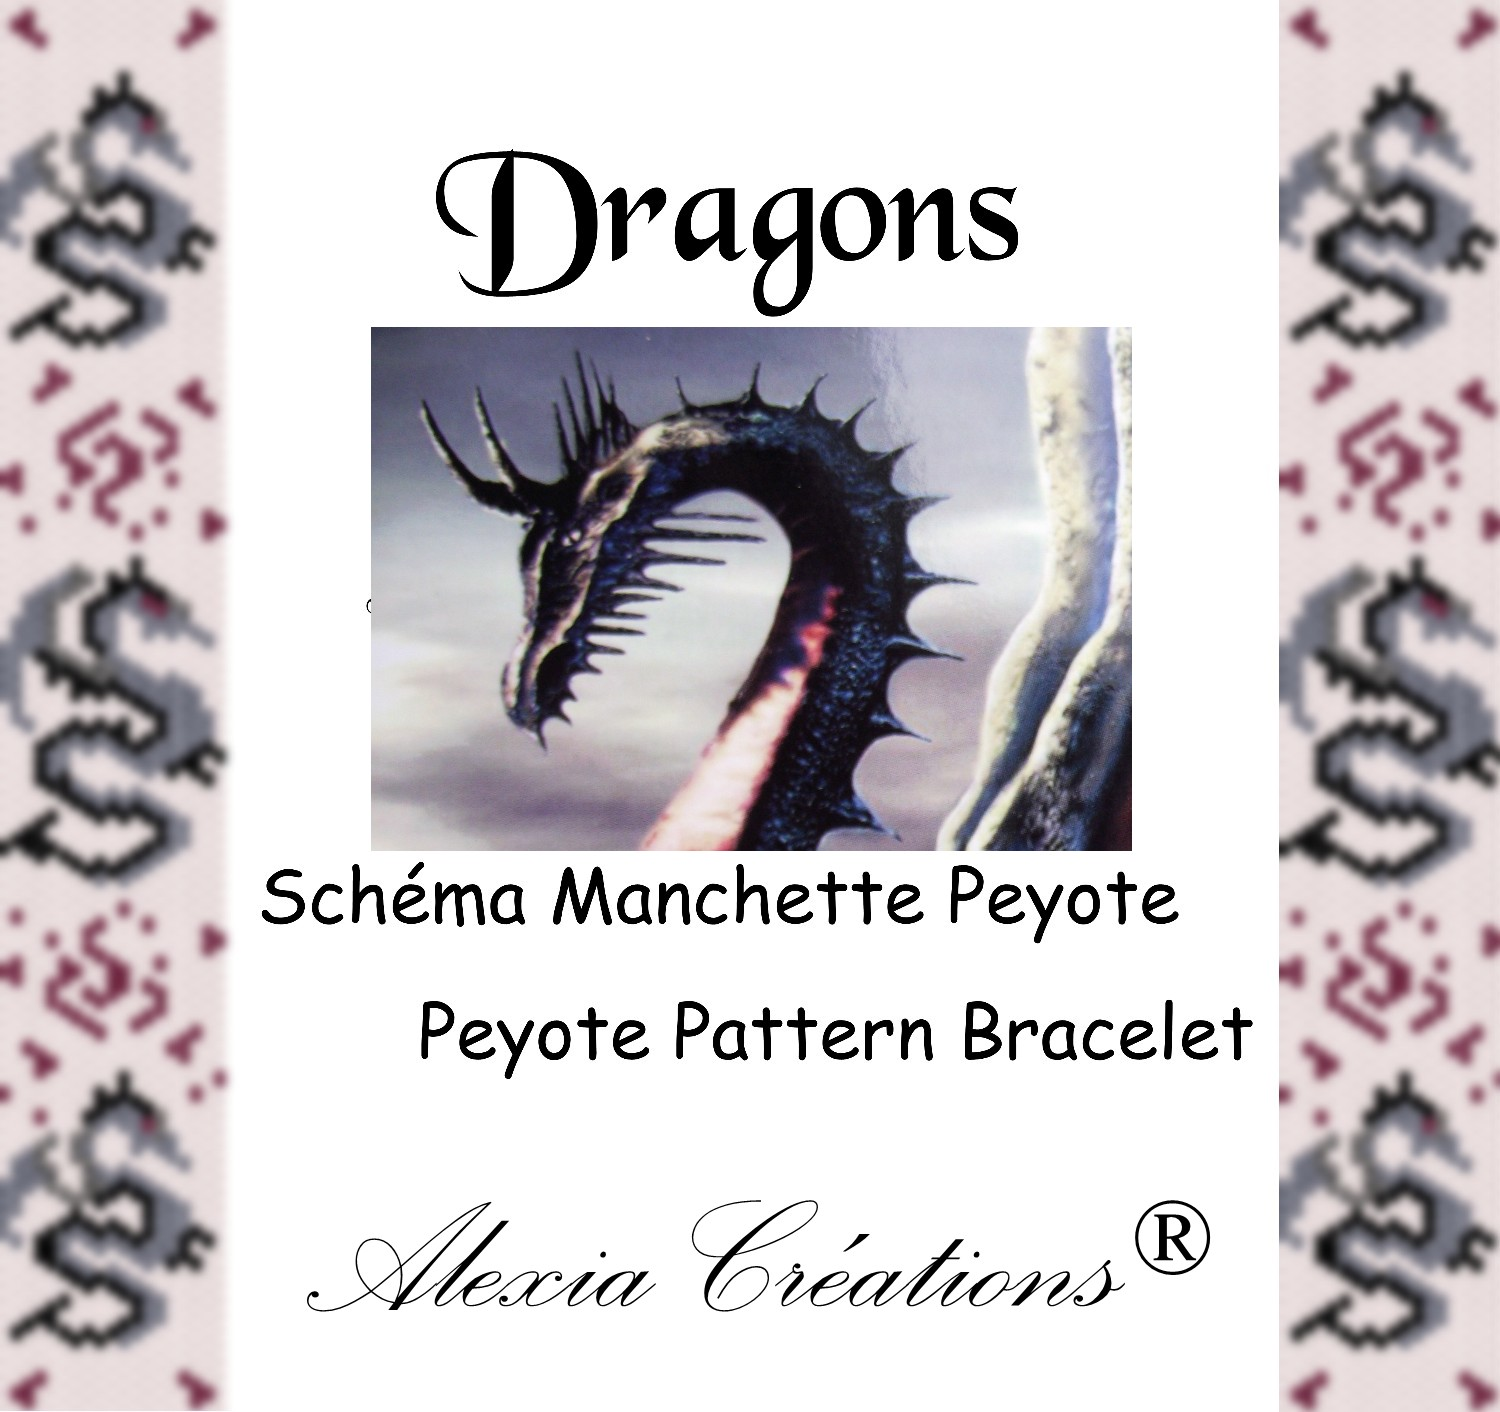 Manchette peyote Dragons